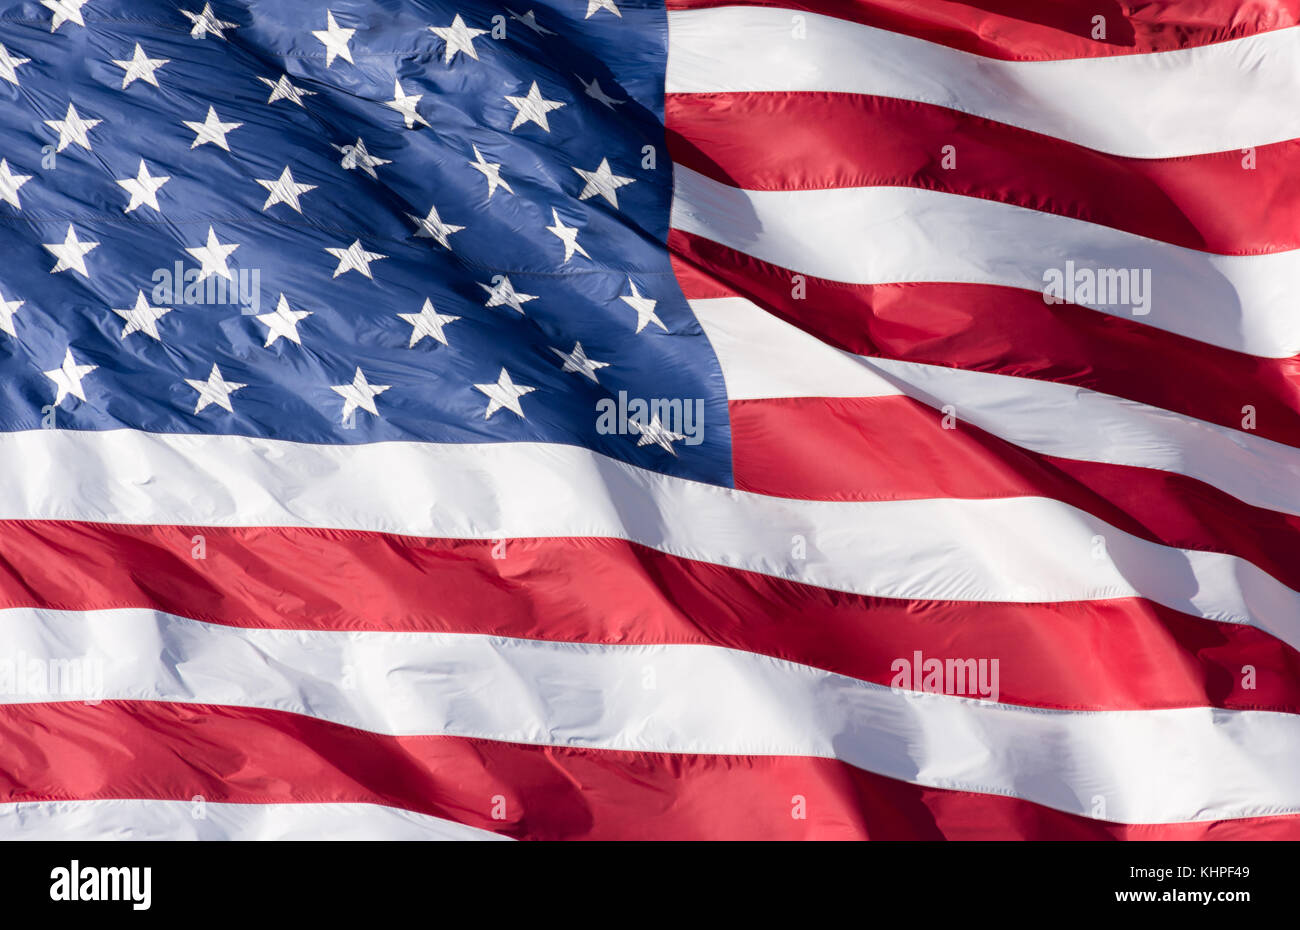 Close Up Of A Red White And Blue American Flag With Stars And Stock Photo Alamy